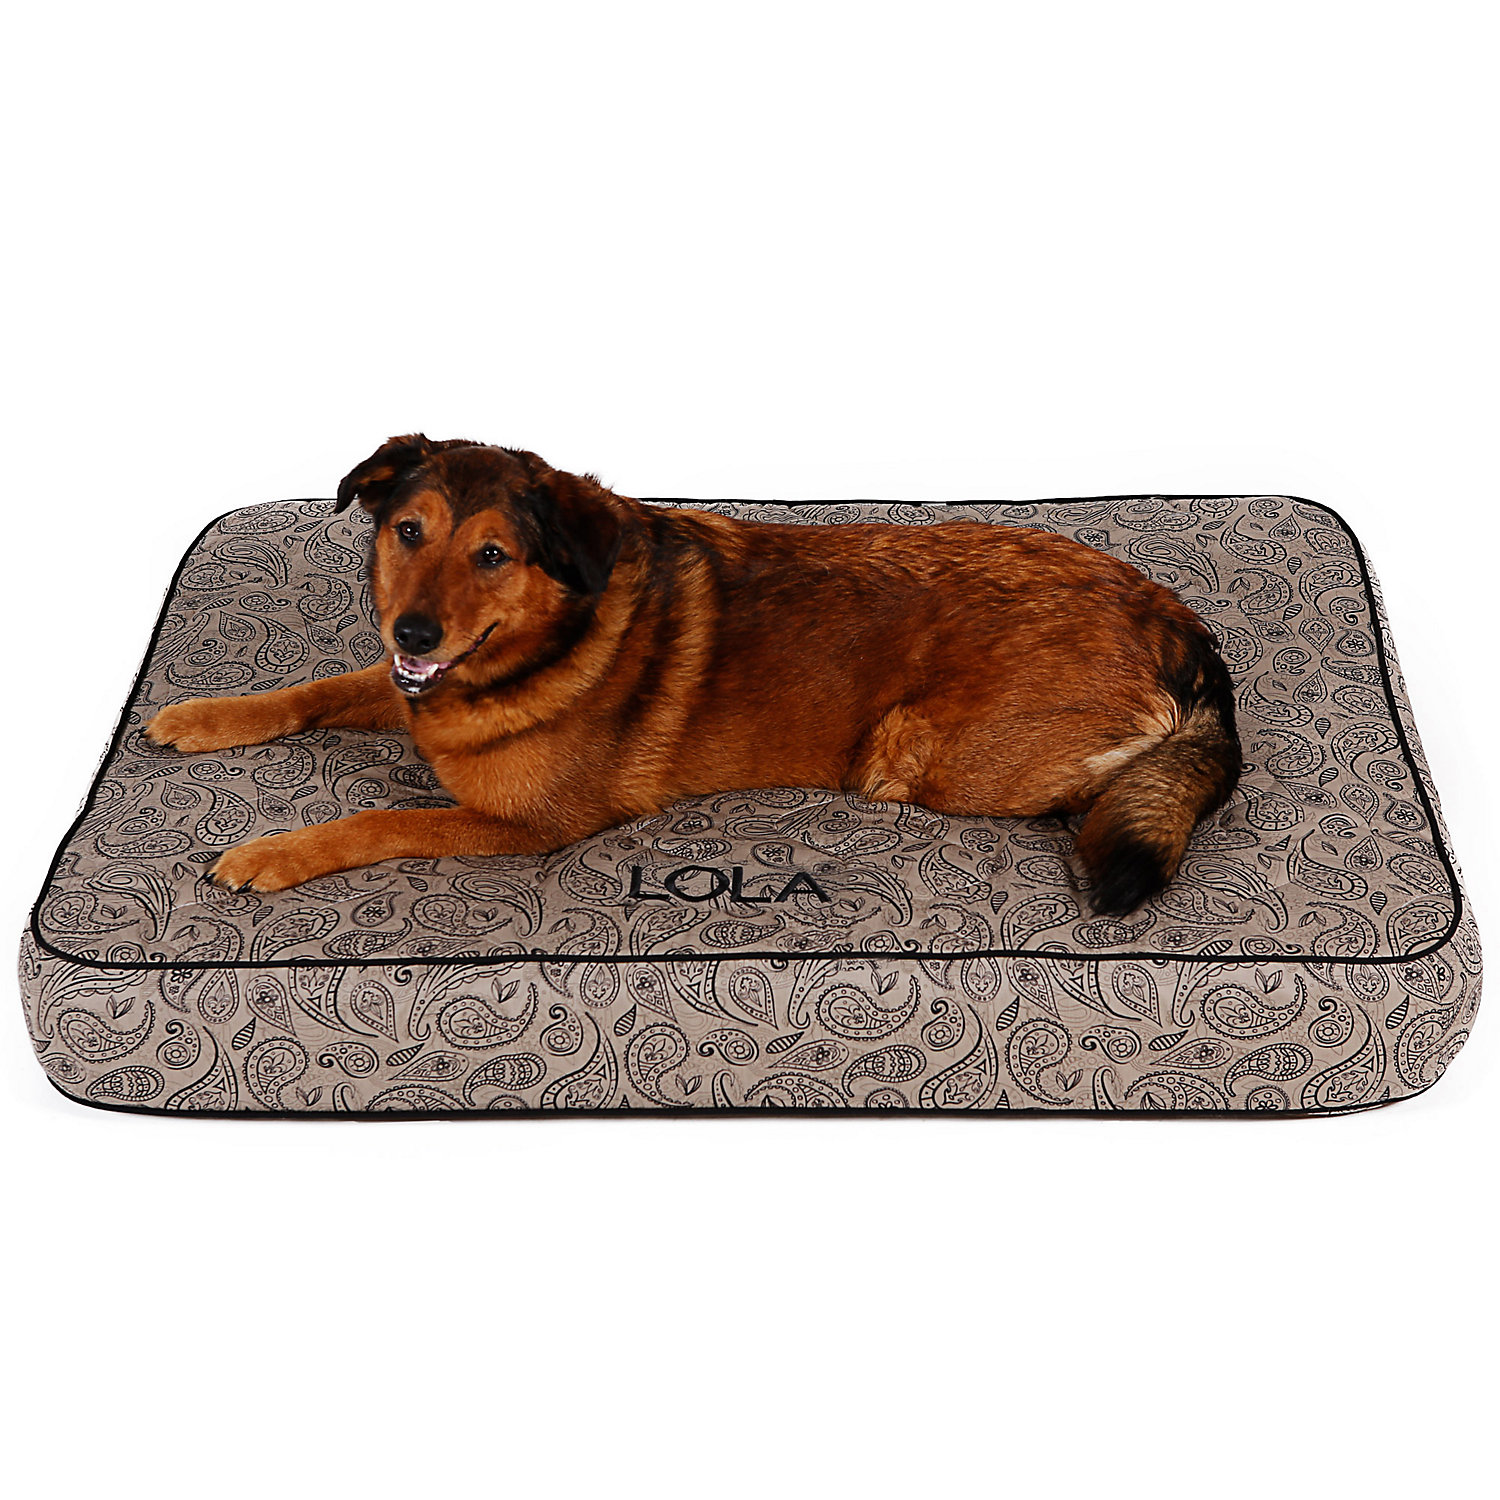 Doctors Foster  Smith Personalized Quilted Super Deluxe Taupe Paisley Dog Beds